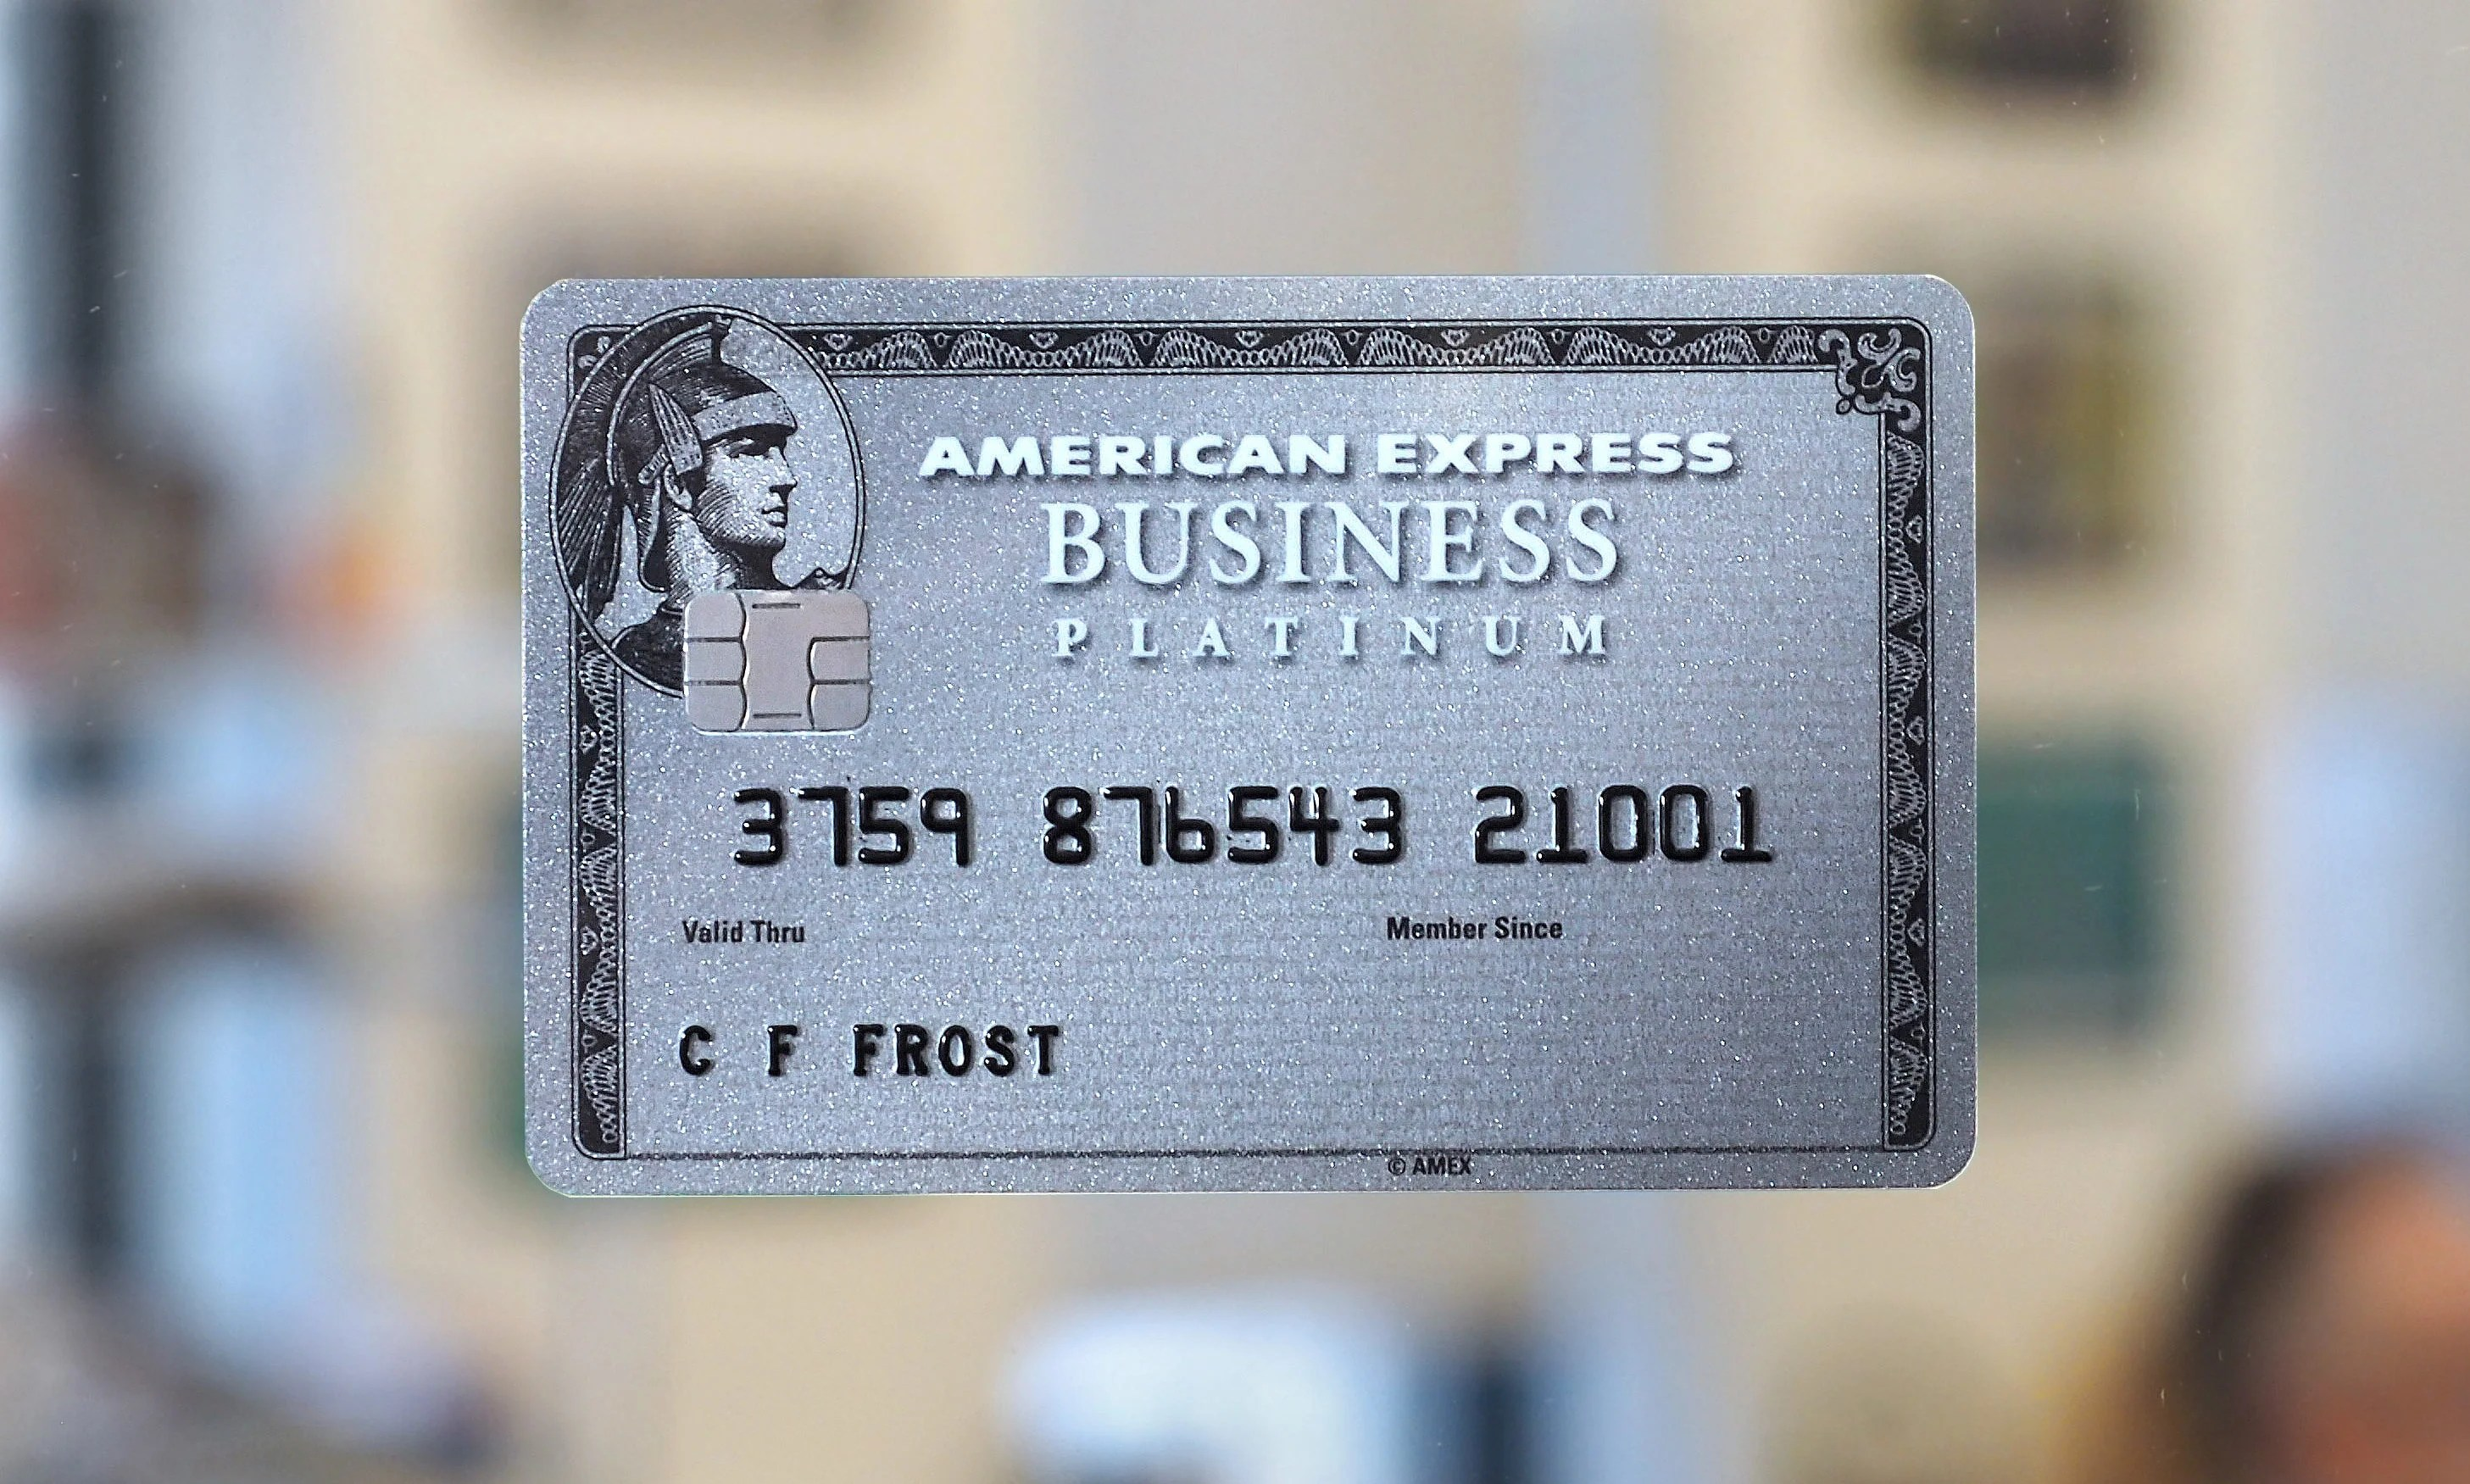 Tips and tricks best use of your points and miles pointsfeeds 50000 bonus points targeted at amex business platinum users magicingreecefo Gallery